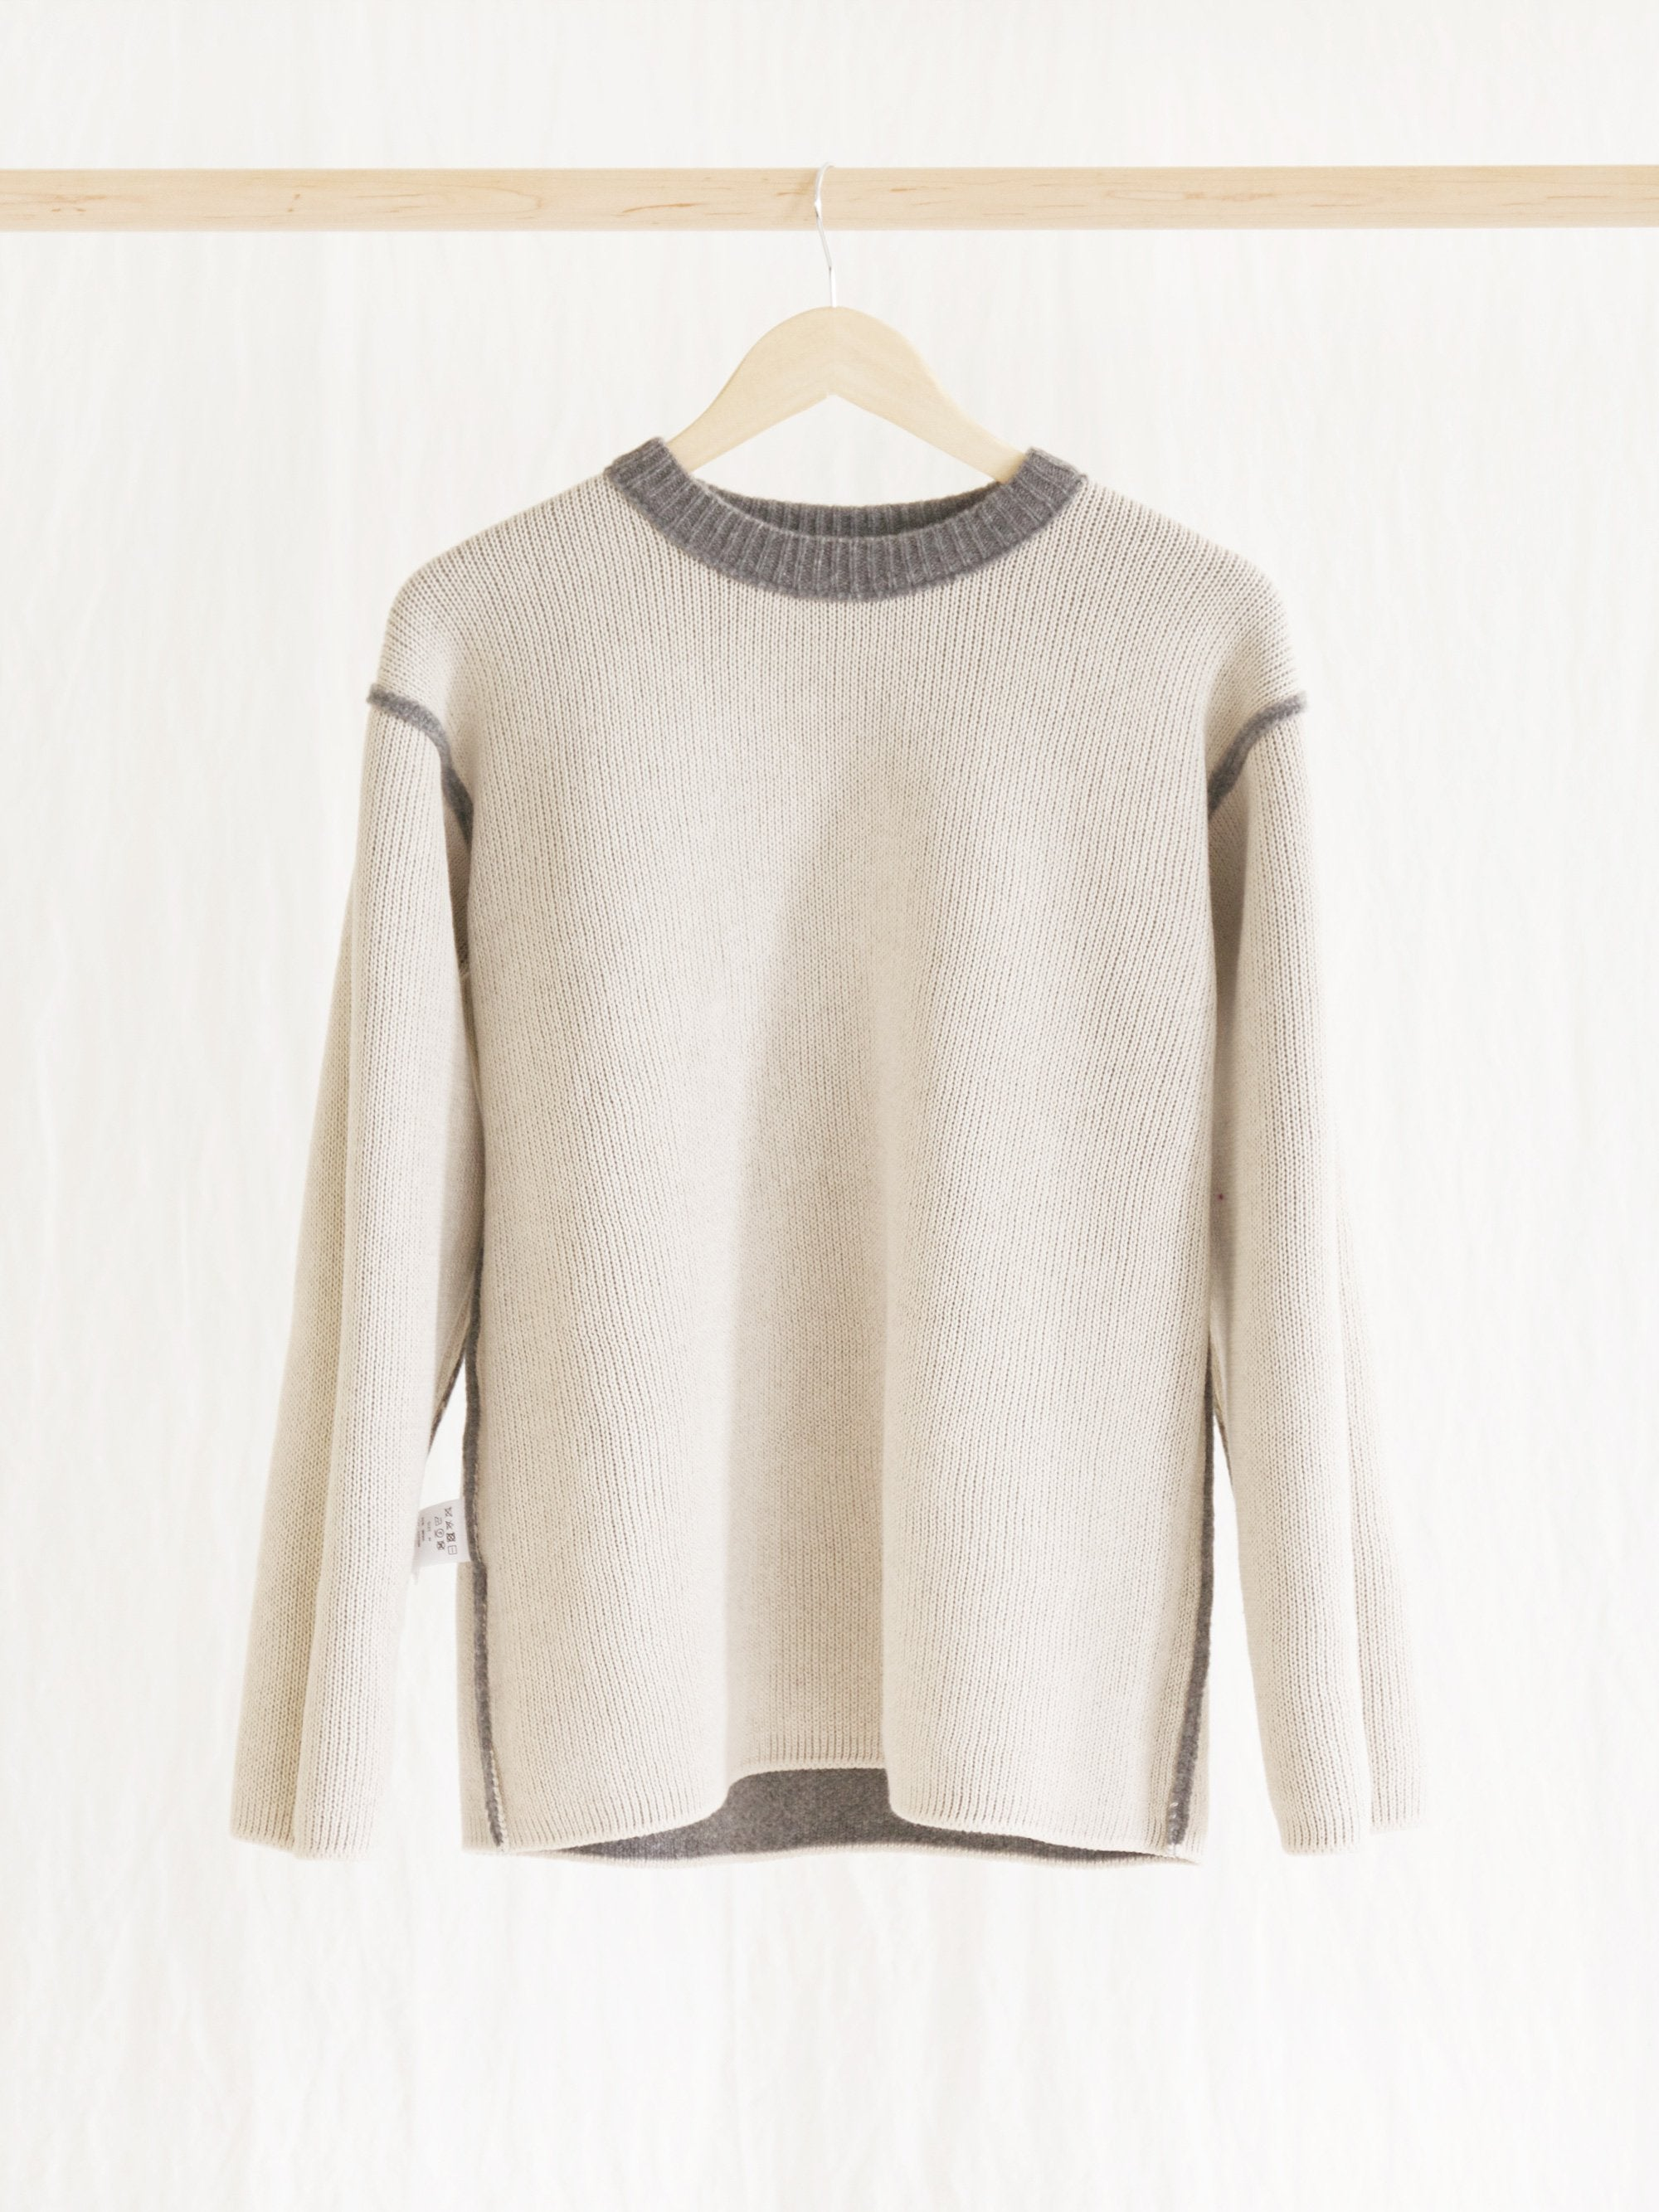 Namu Shop - ts(s) Cooma Lambs Wool Crew Neck Knit - Gray